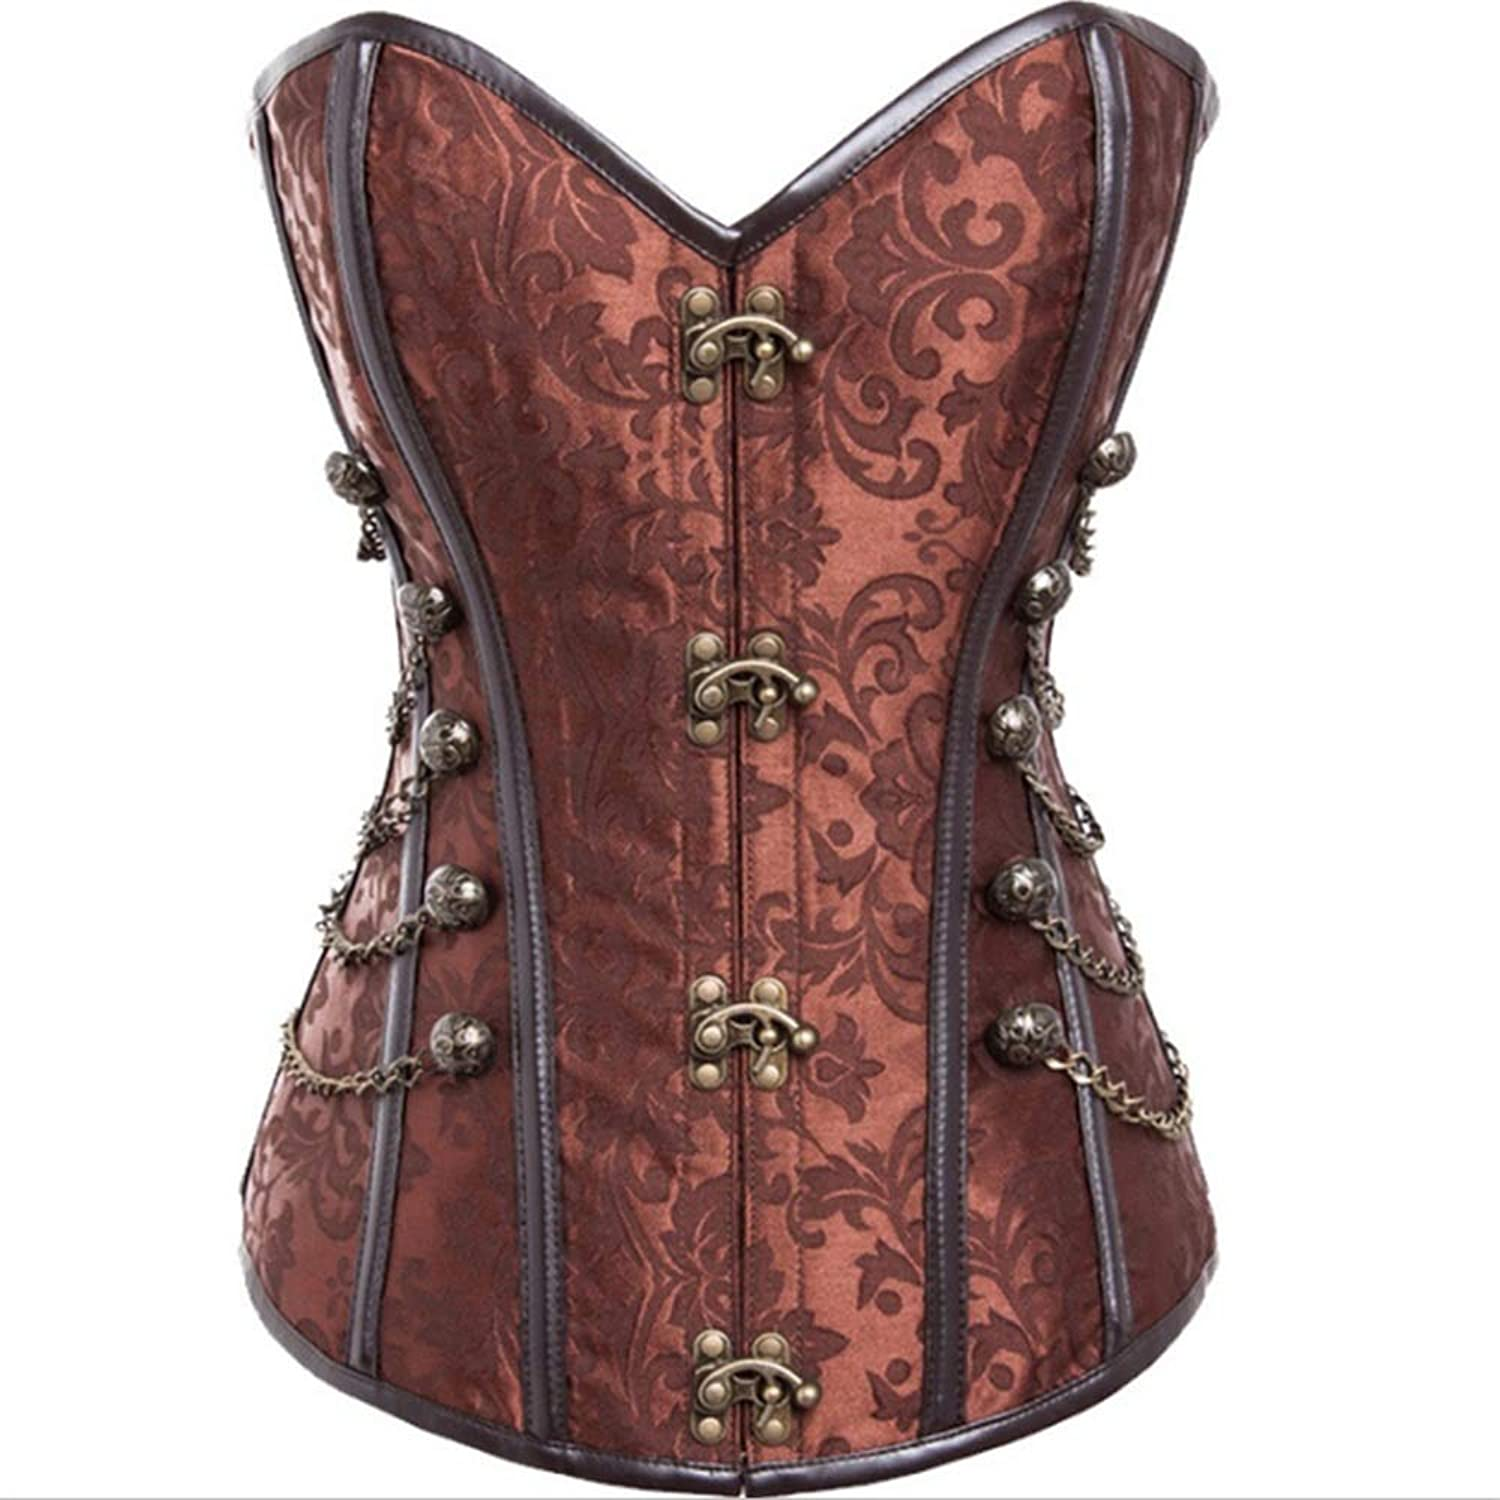 Waist Training Corset Women's Steampunk Corset Faux Leather Buckle Up Front Brown Corset Women Slimming Tummy Tank Top (color   Brown, Size   XXXXL)